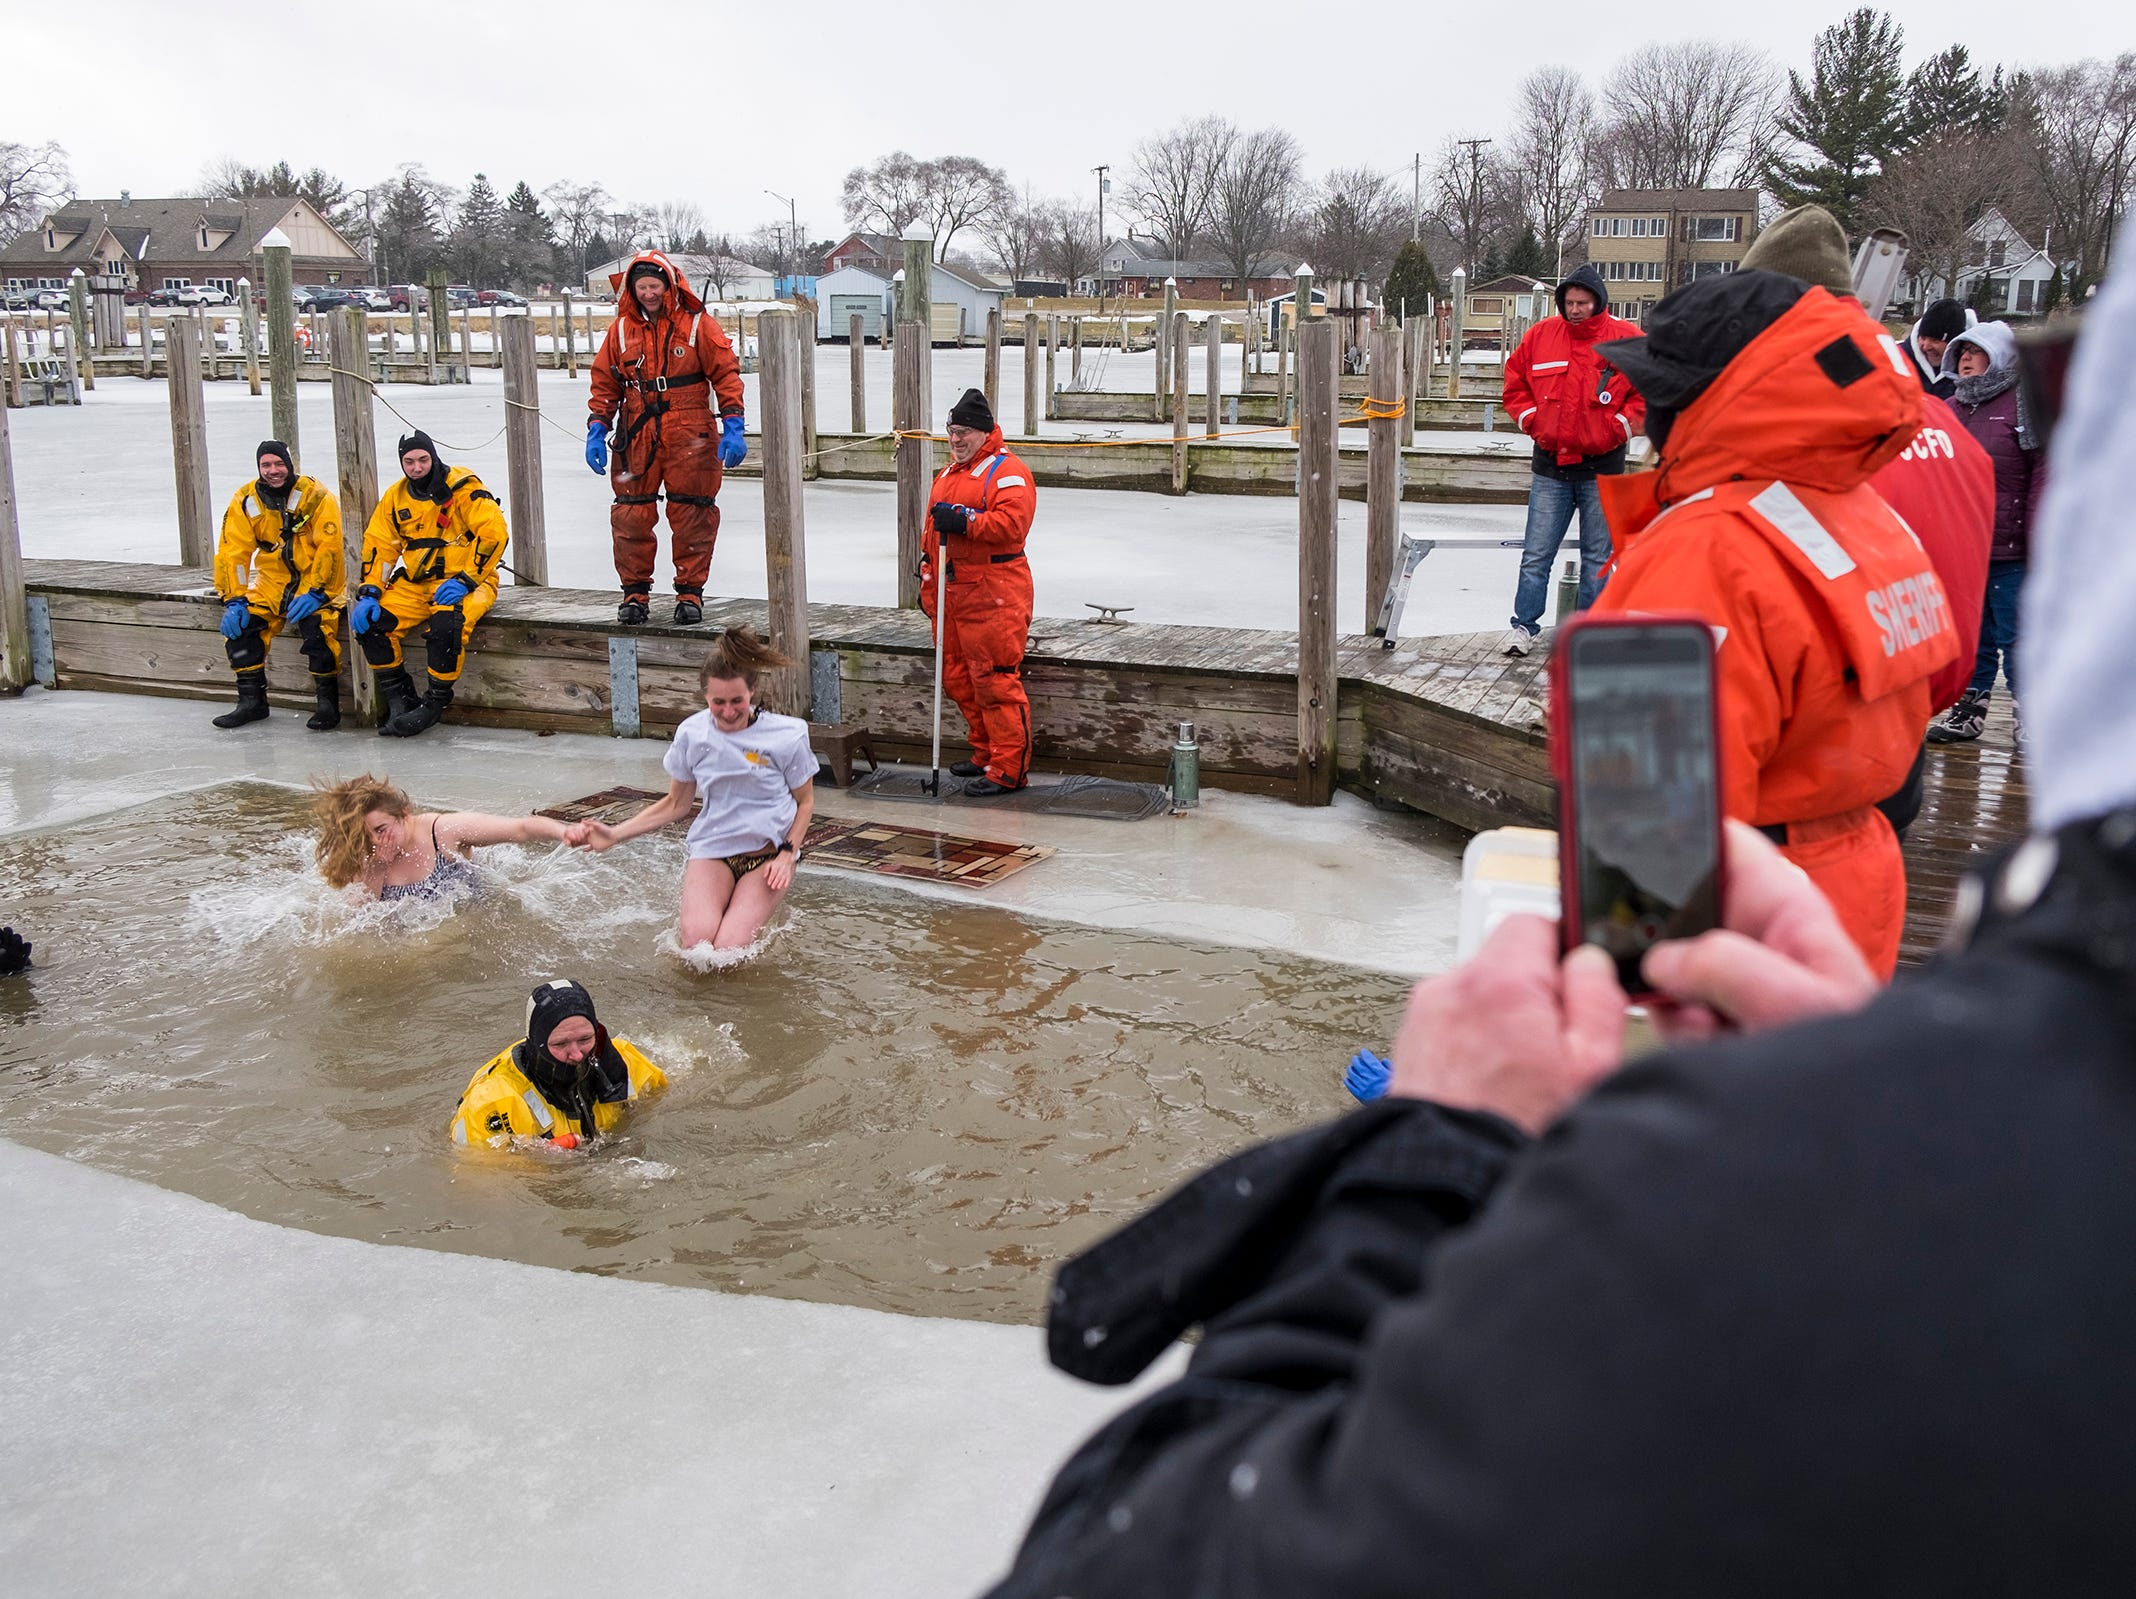 Johnny Carter, right, takes pictures on a cell phone while Krista Stolicker and Lauren Kramer plunge into the water in the St. Clair Boat Harbor Sunday, Feb. 24, 2019 during the annual St. Clair Polar Plunge.